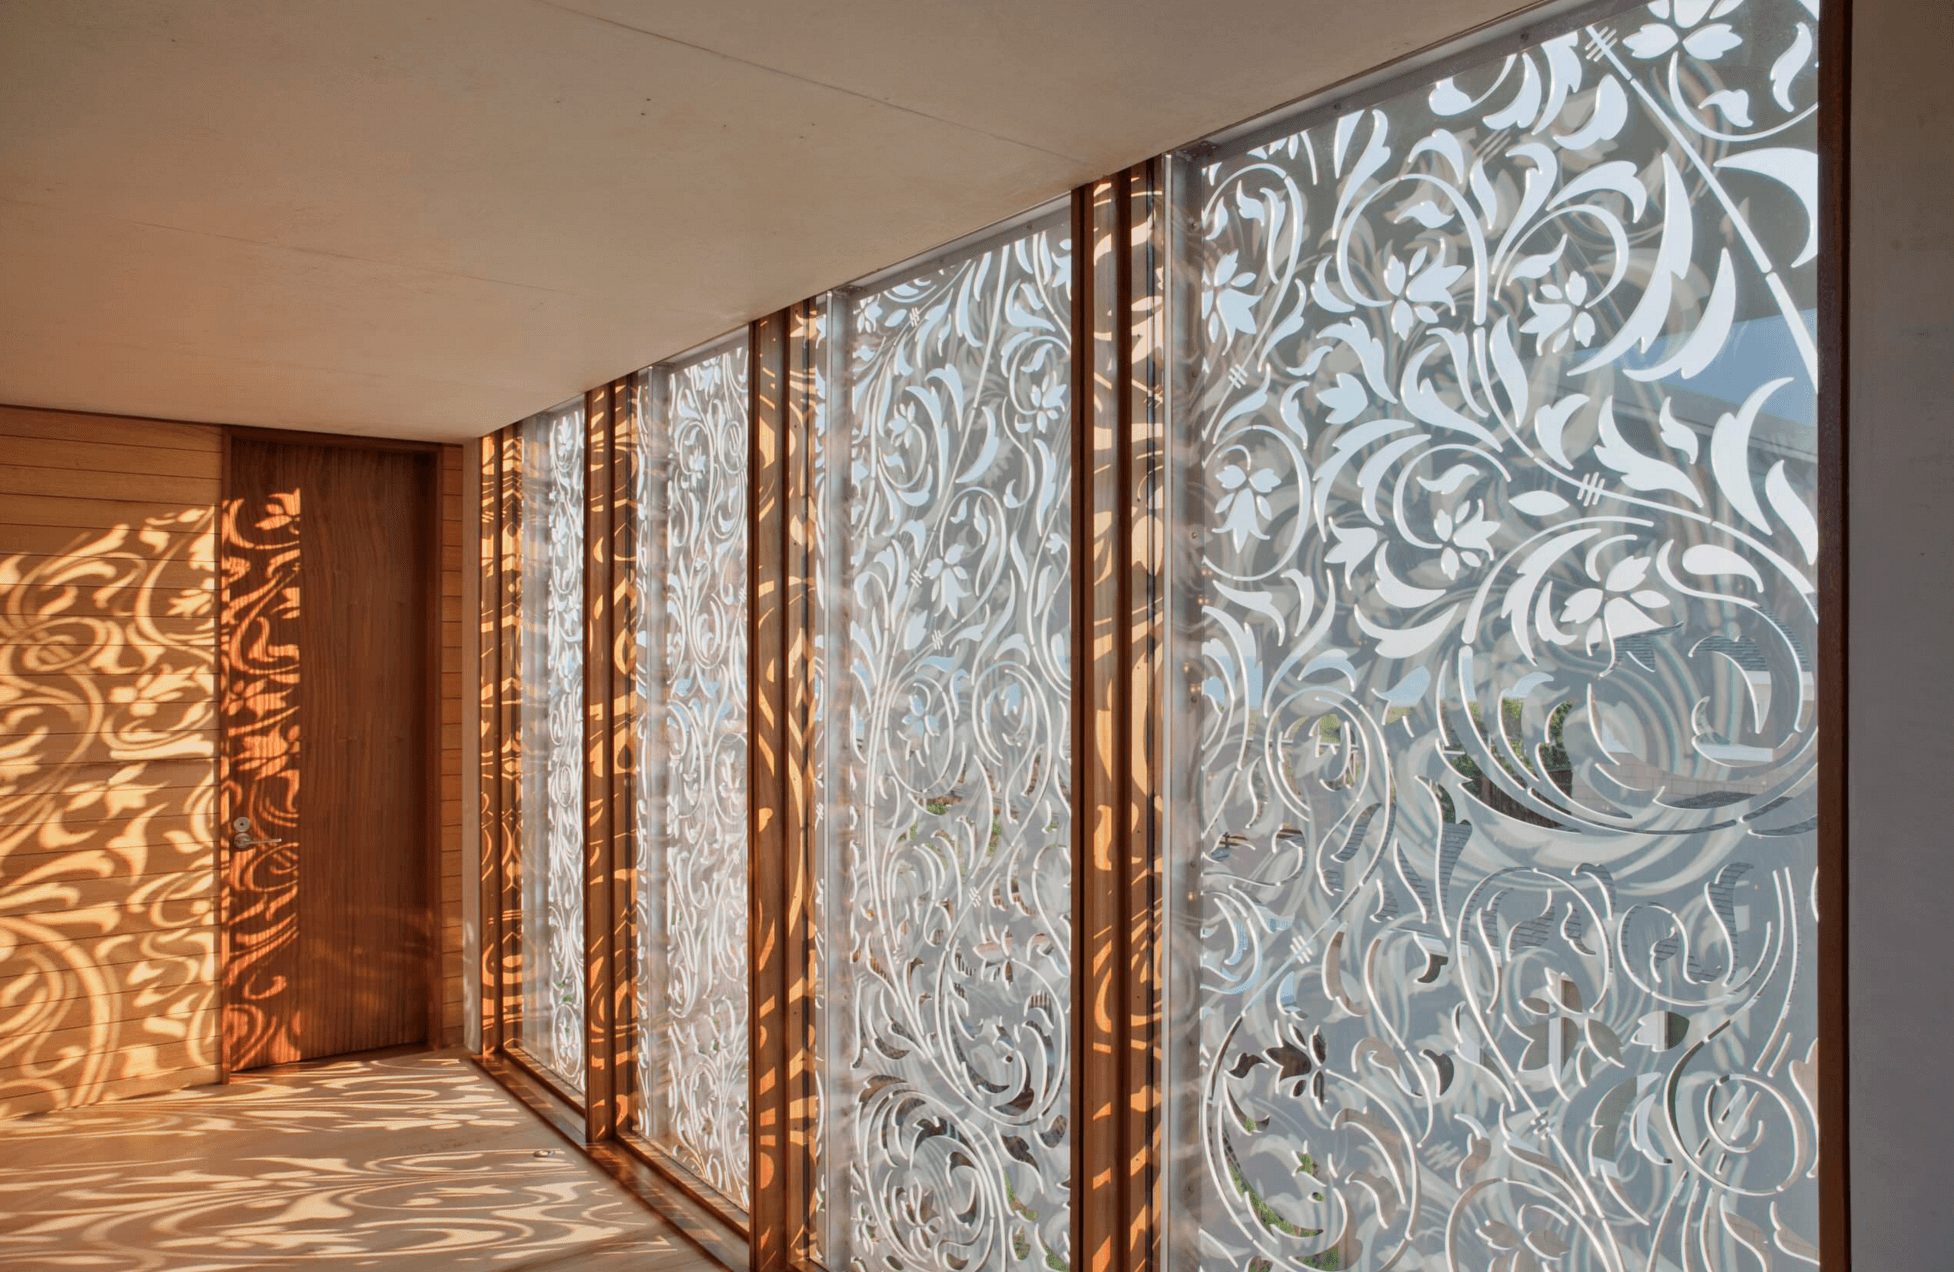 beautiful aluminum screens like these ones will add chic to both indoors and outdoors keeping the spaces private enough